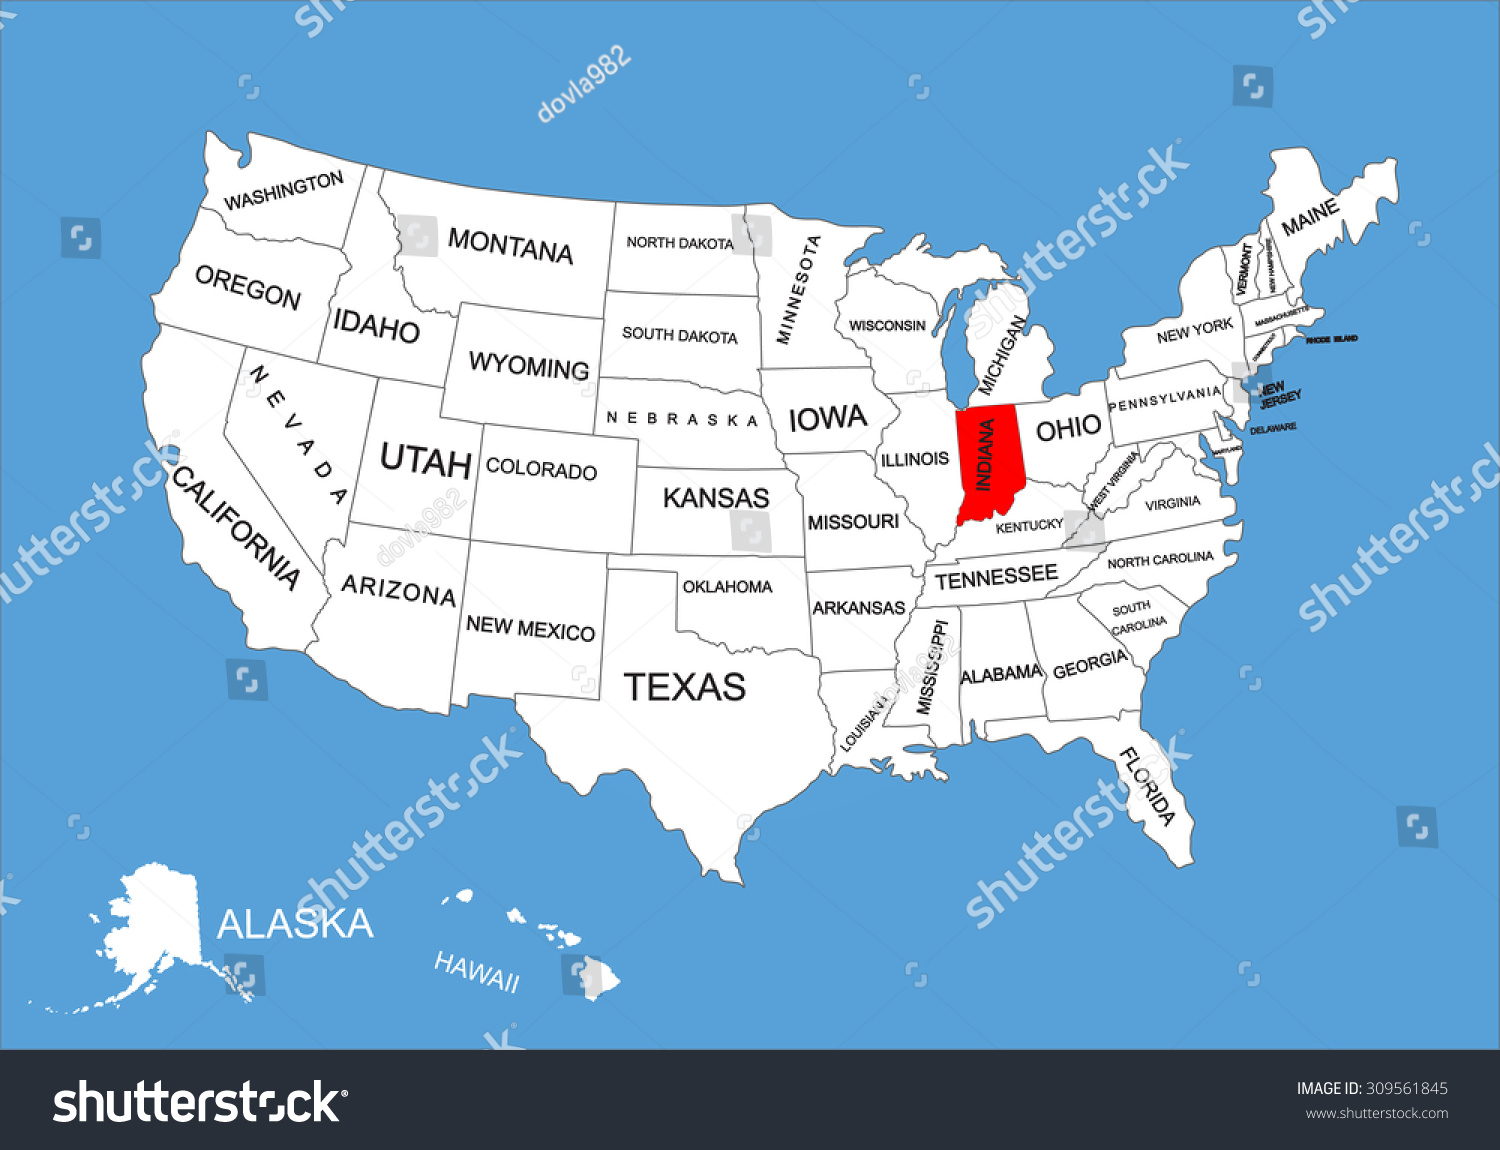 Indiana State Usa Vector Map Isolated Stock Vector - Indiana state on us map